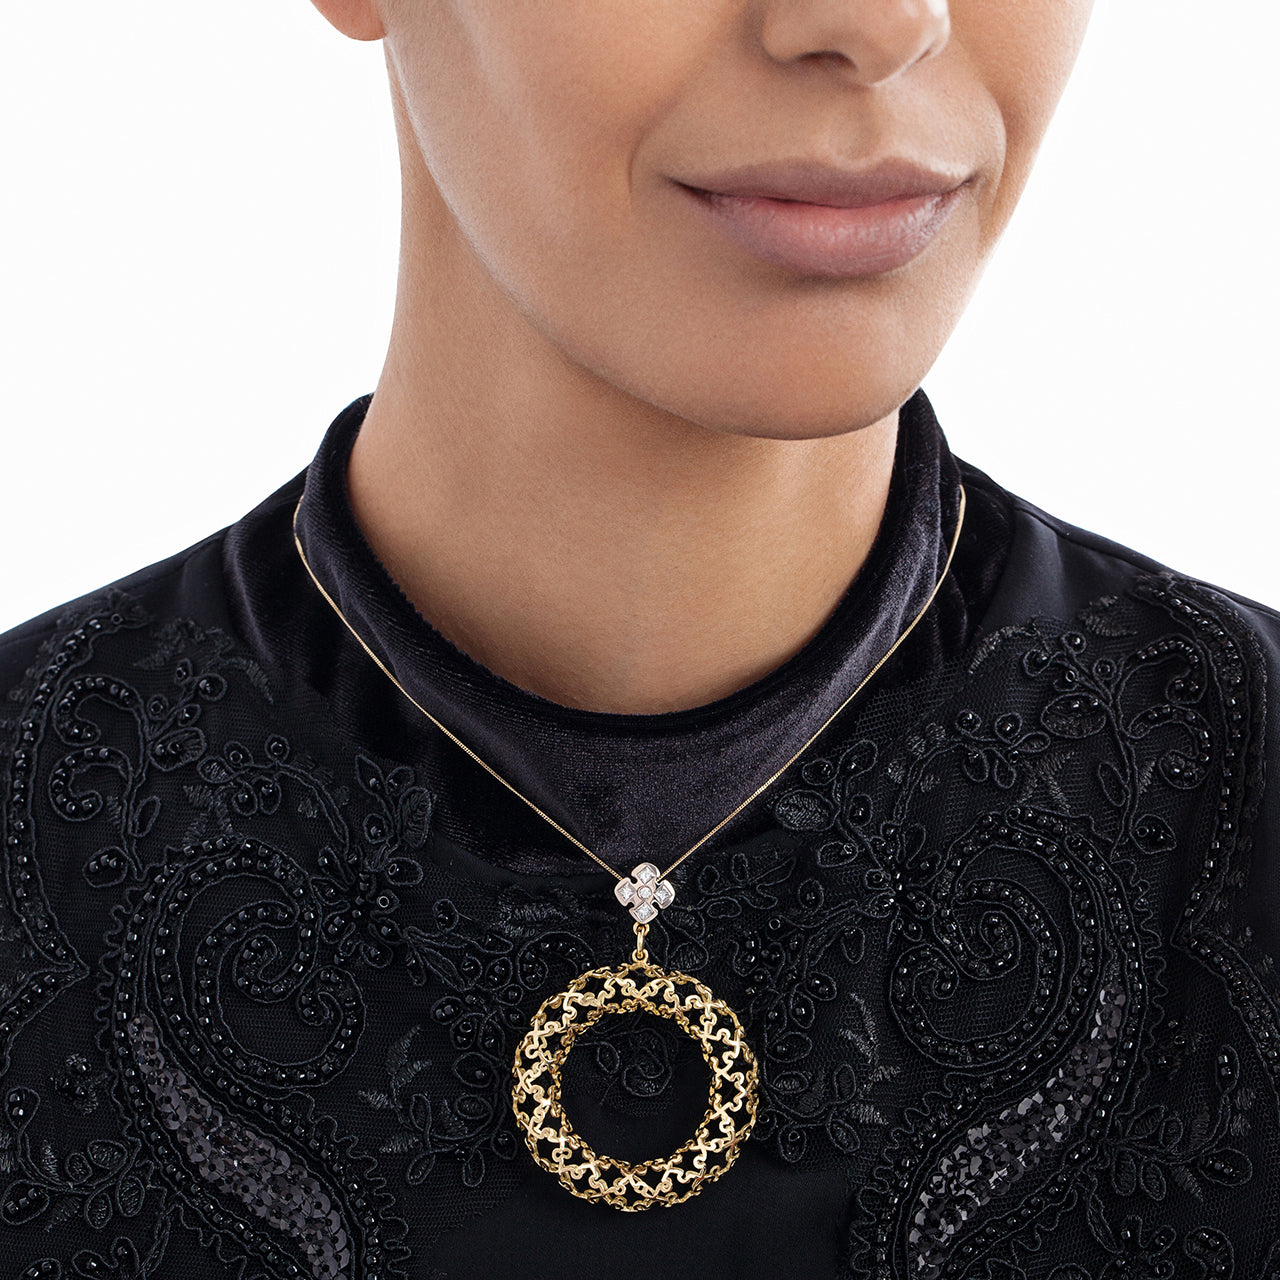 Puzzle Bagel Pendant on Model